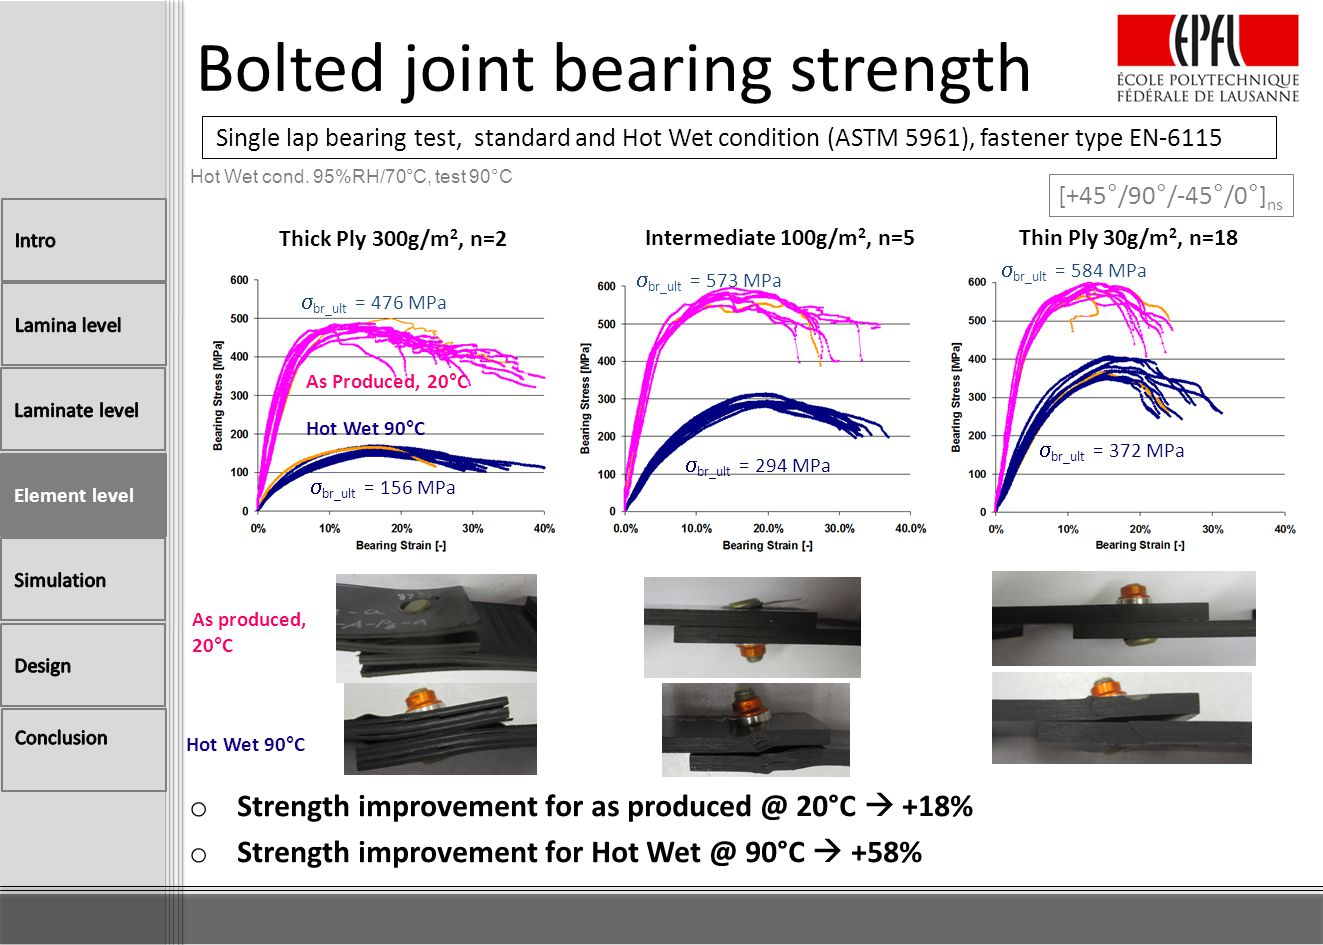 Bolted joint bearing strength